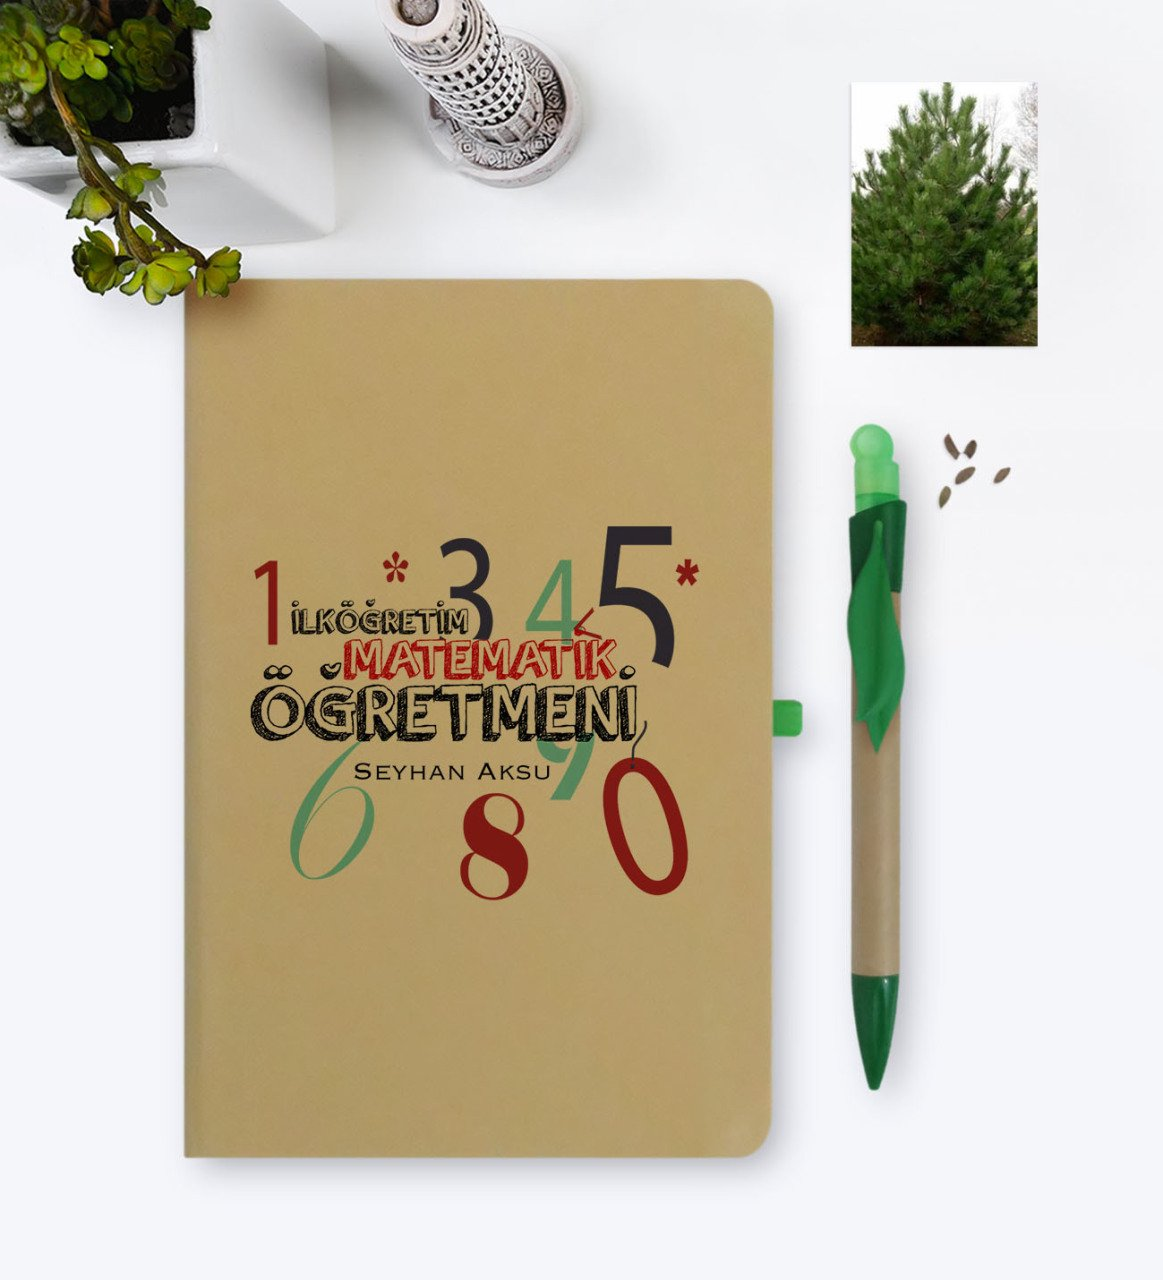 Personalized Primary Mathematics Teacher Environmentalist Notebook And Seeded Pen Set-1